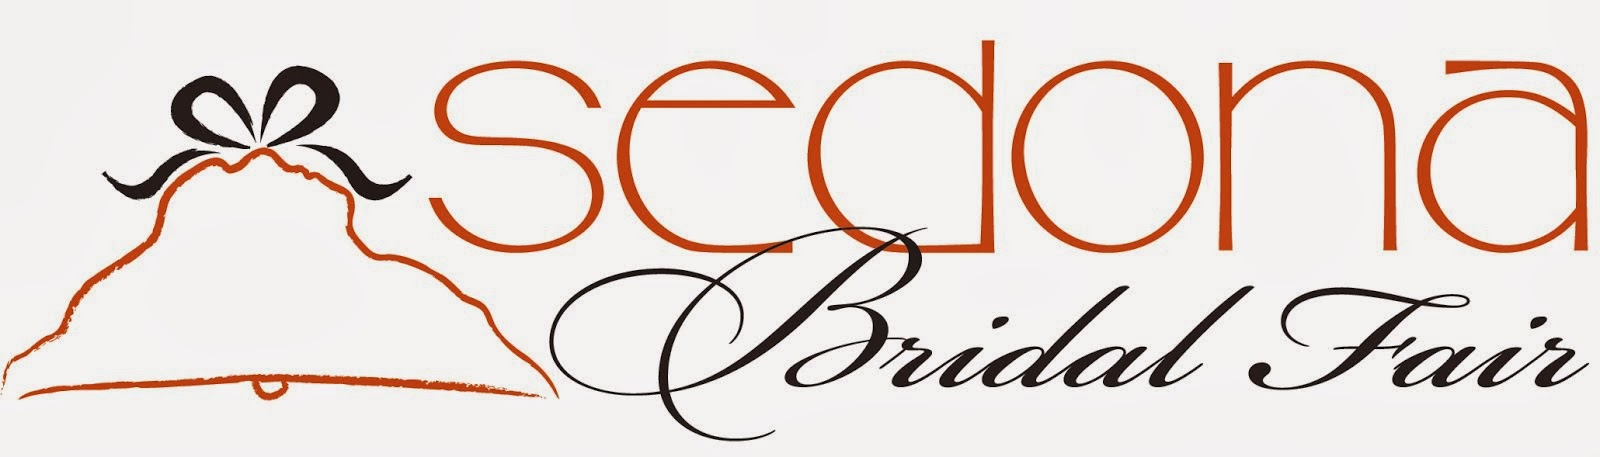 The Sedona Bridal Fair